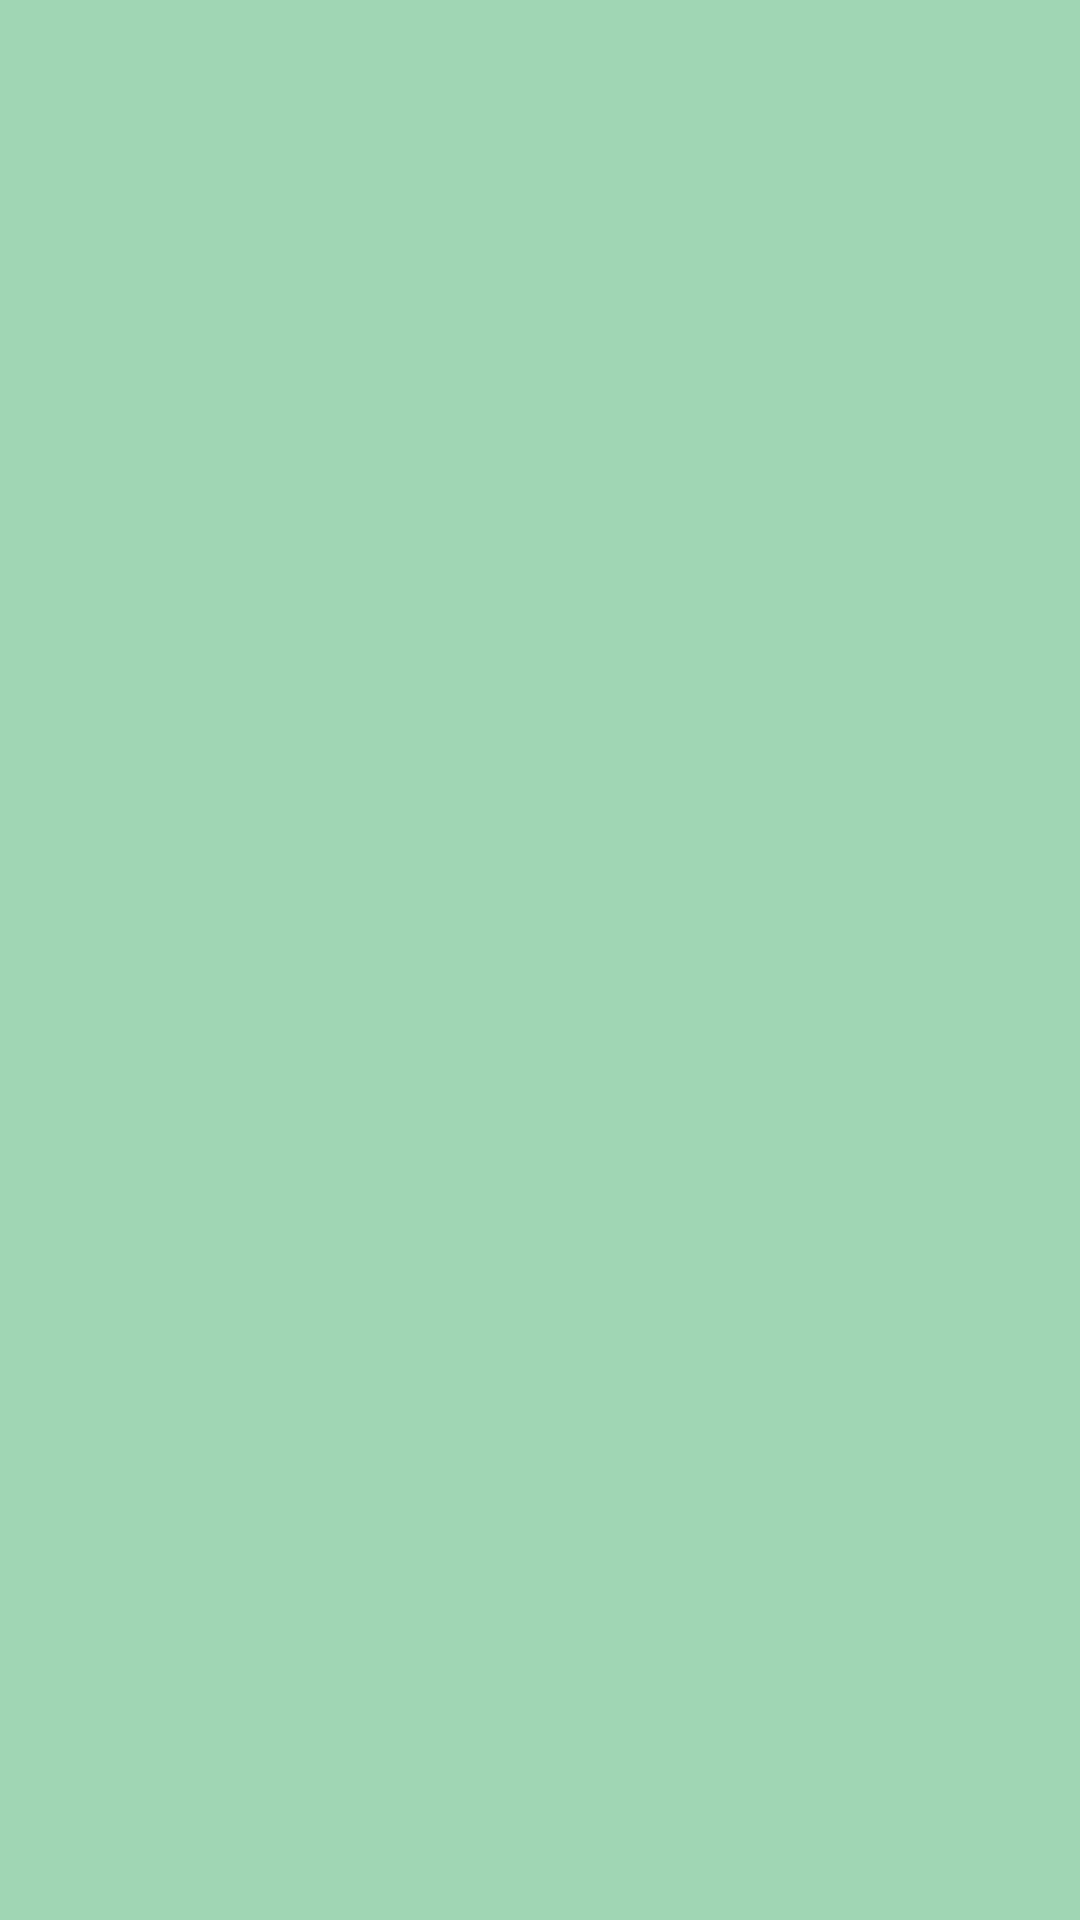 1080x1920 Turquoise Green Solid Color Background